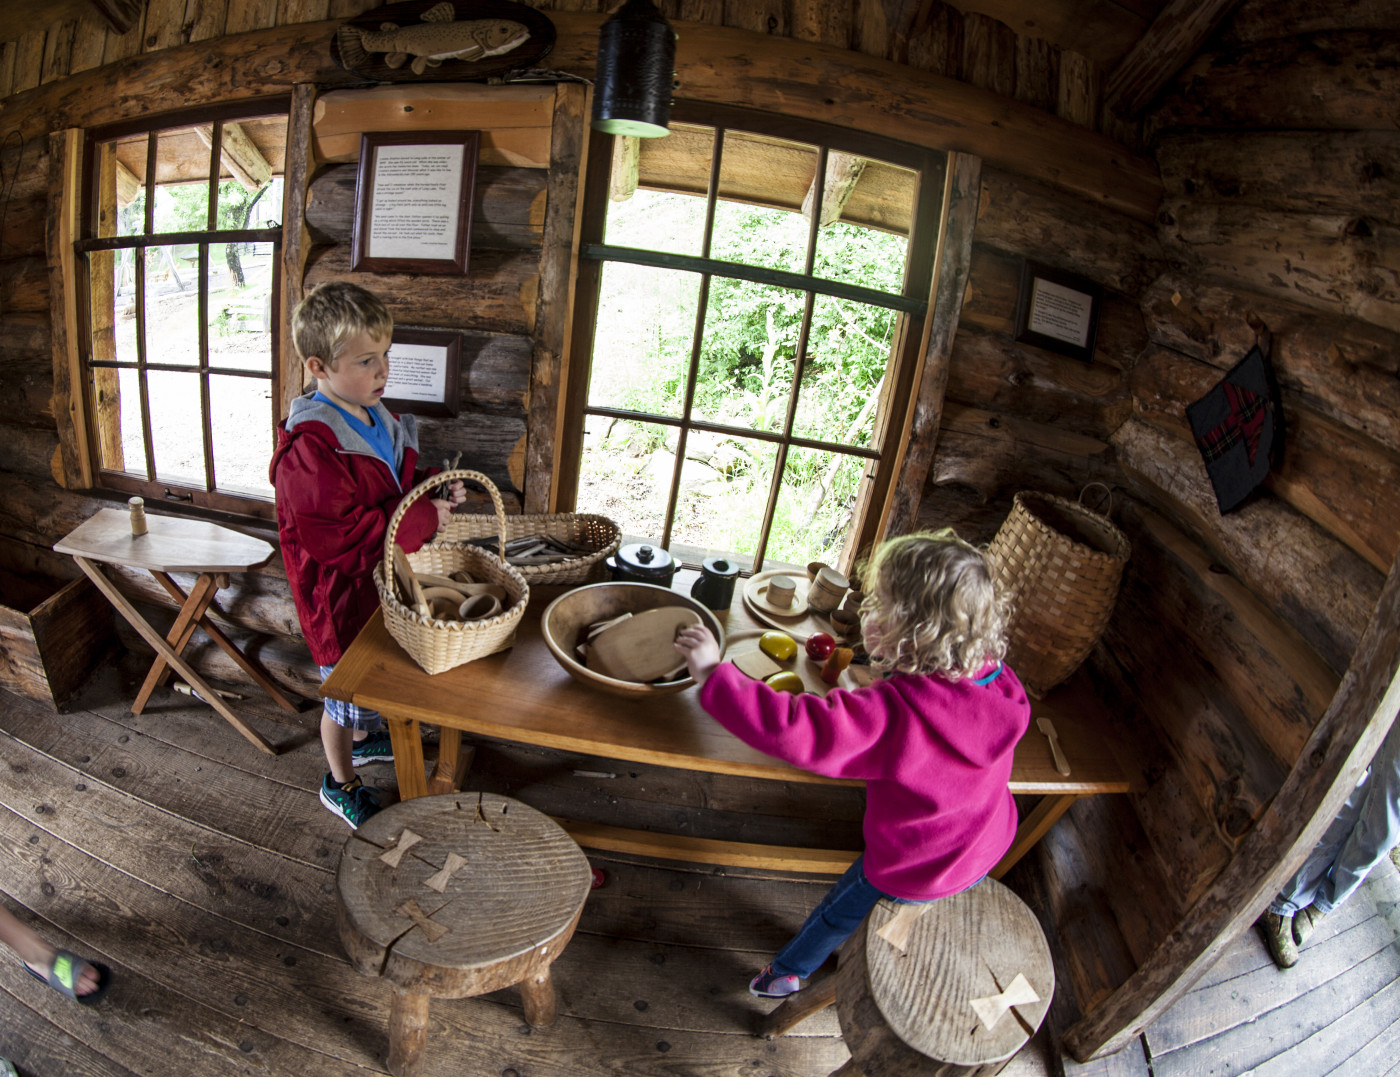 Kids play at the Adirondack Experience, the museum on Blue Mountain Lake